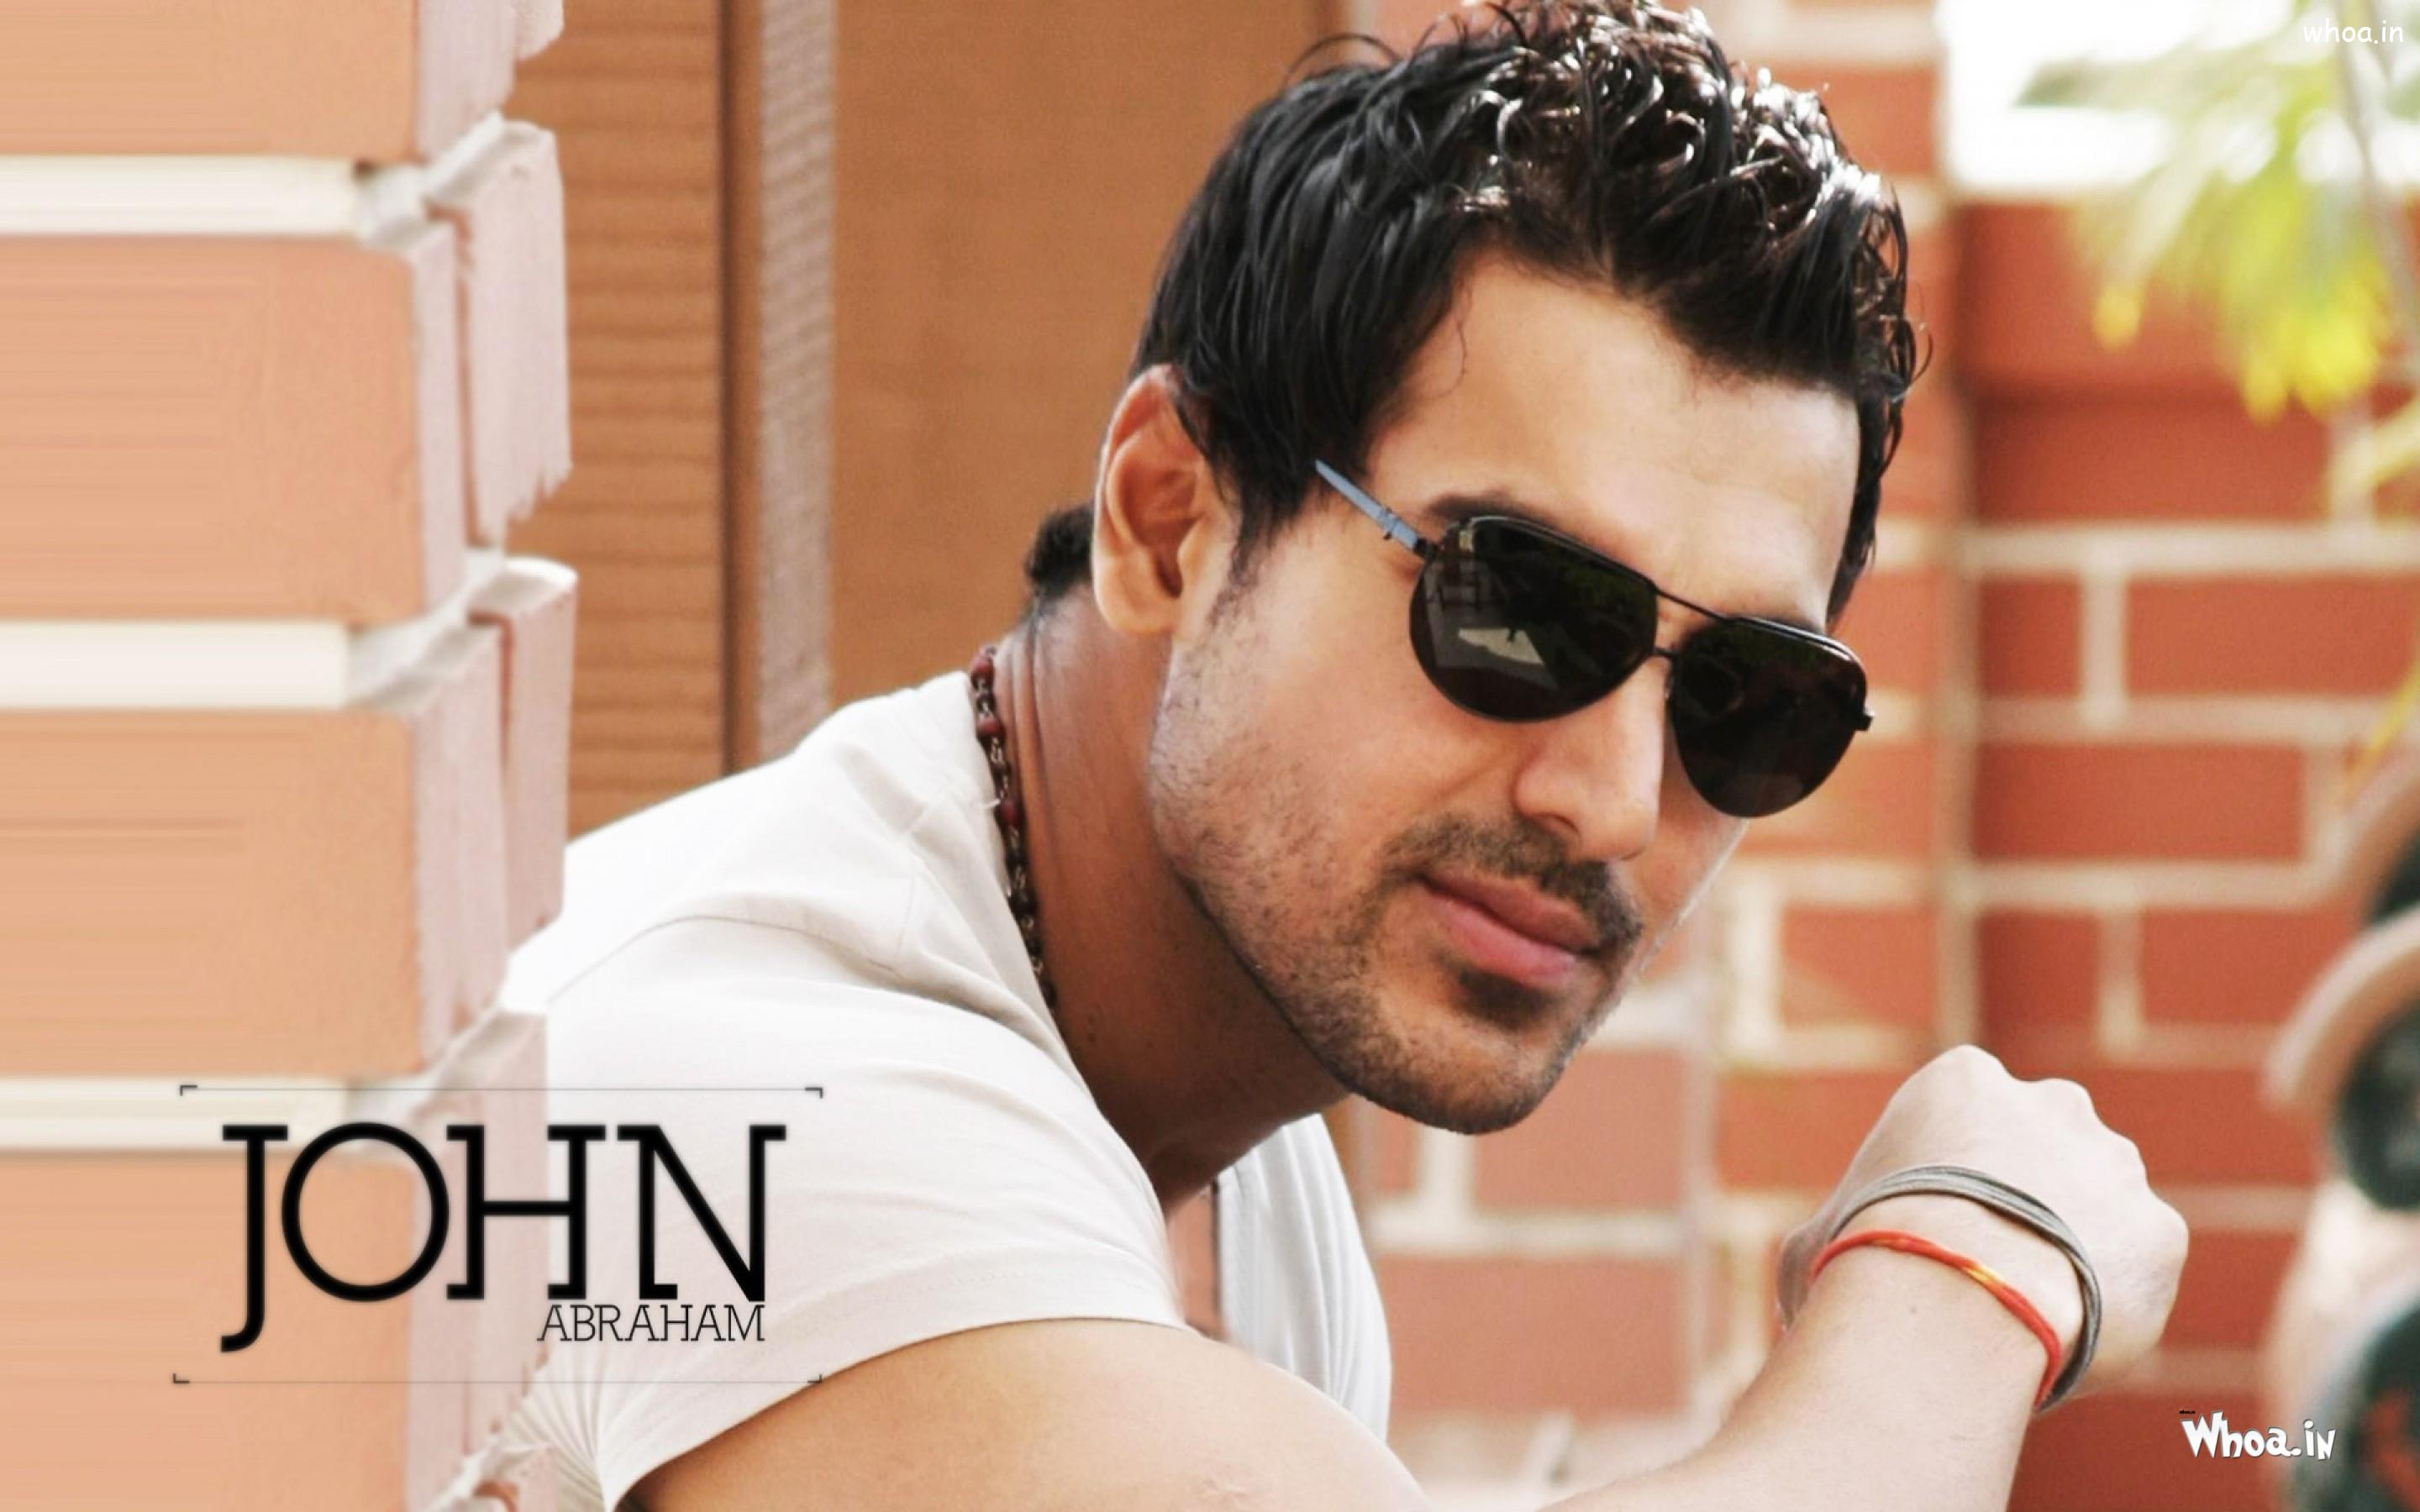 Wallpaper download john abraham -  John Abraham Stylish Look With Black Sunglass Hd Wallpaper